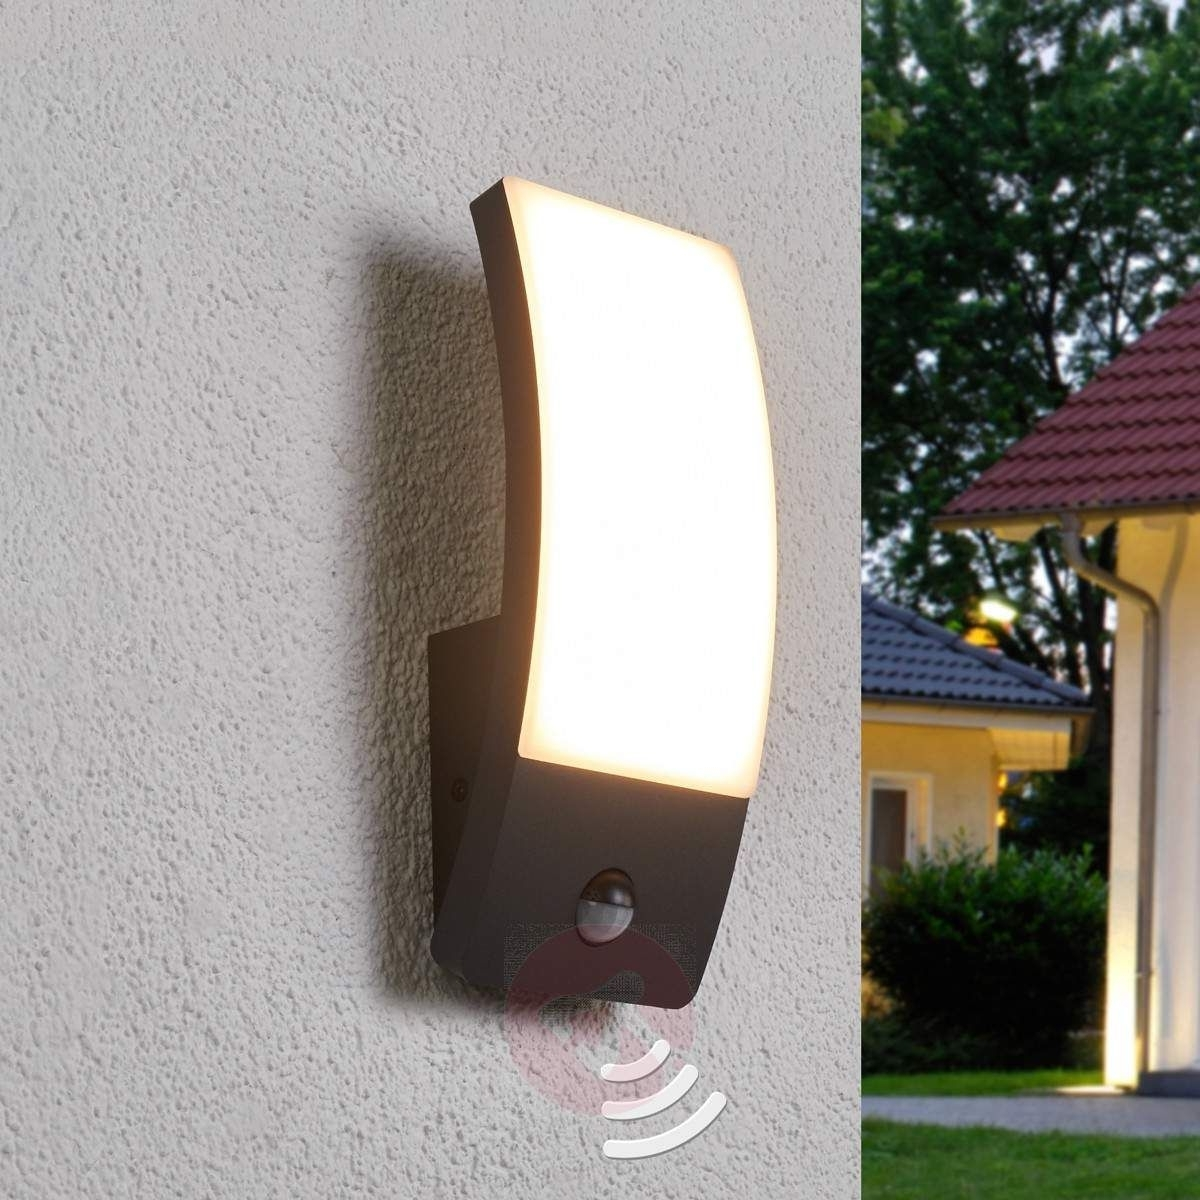 Led Outdoor Raccoon Wall Lights With Motion Detector Regarding Best And Newest Dark Grey Led Outdoor Wall Light Siara With Sensor 9619095  (View 10 of 20)